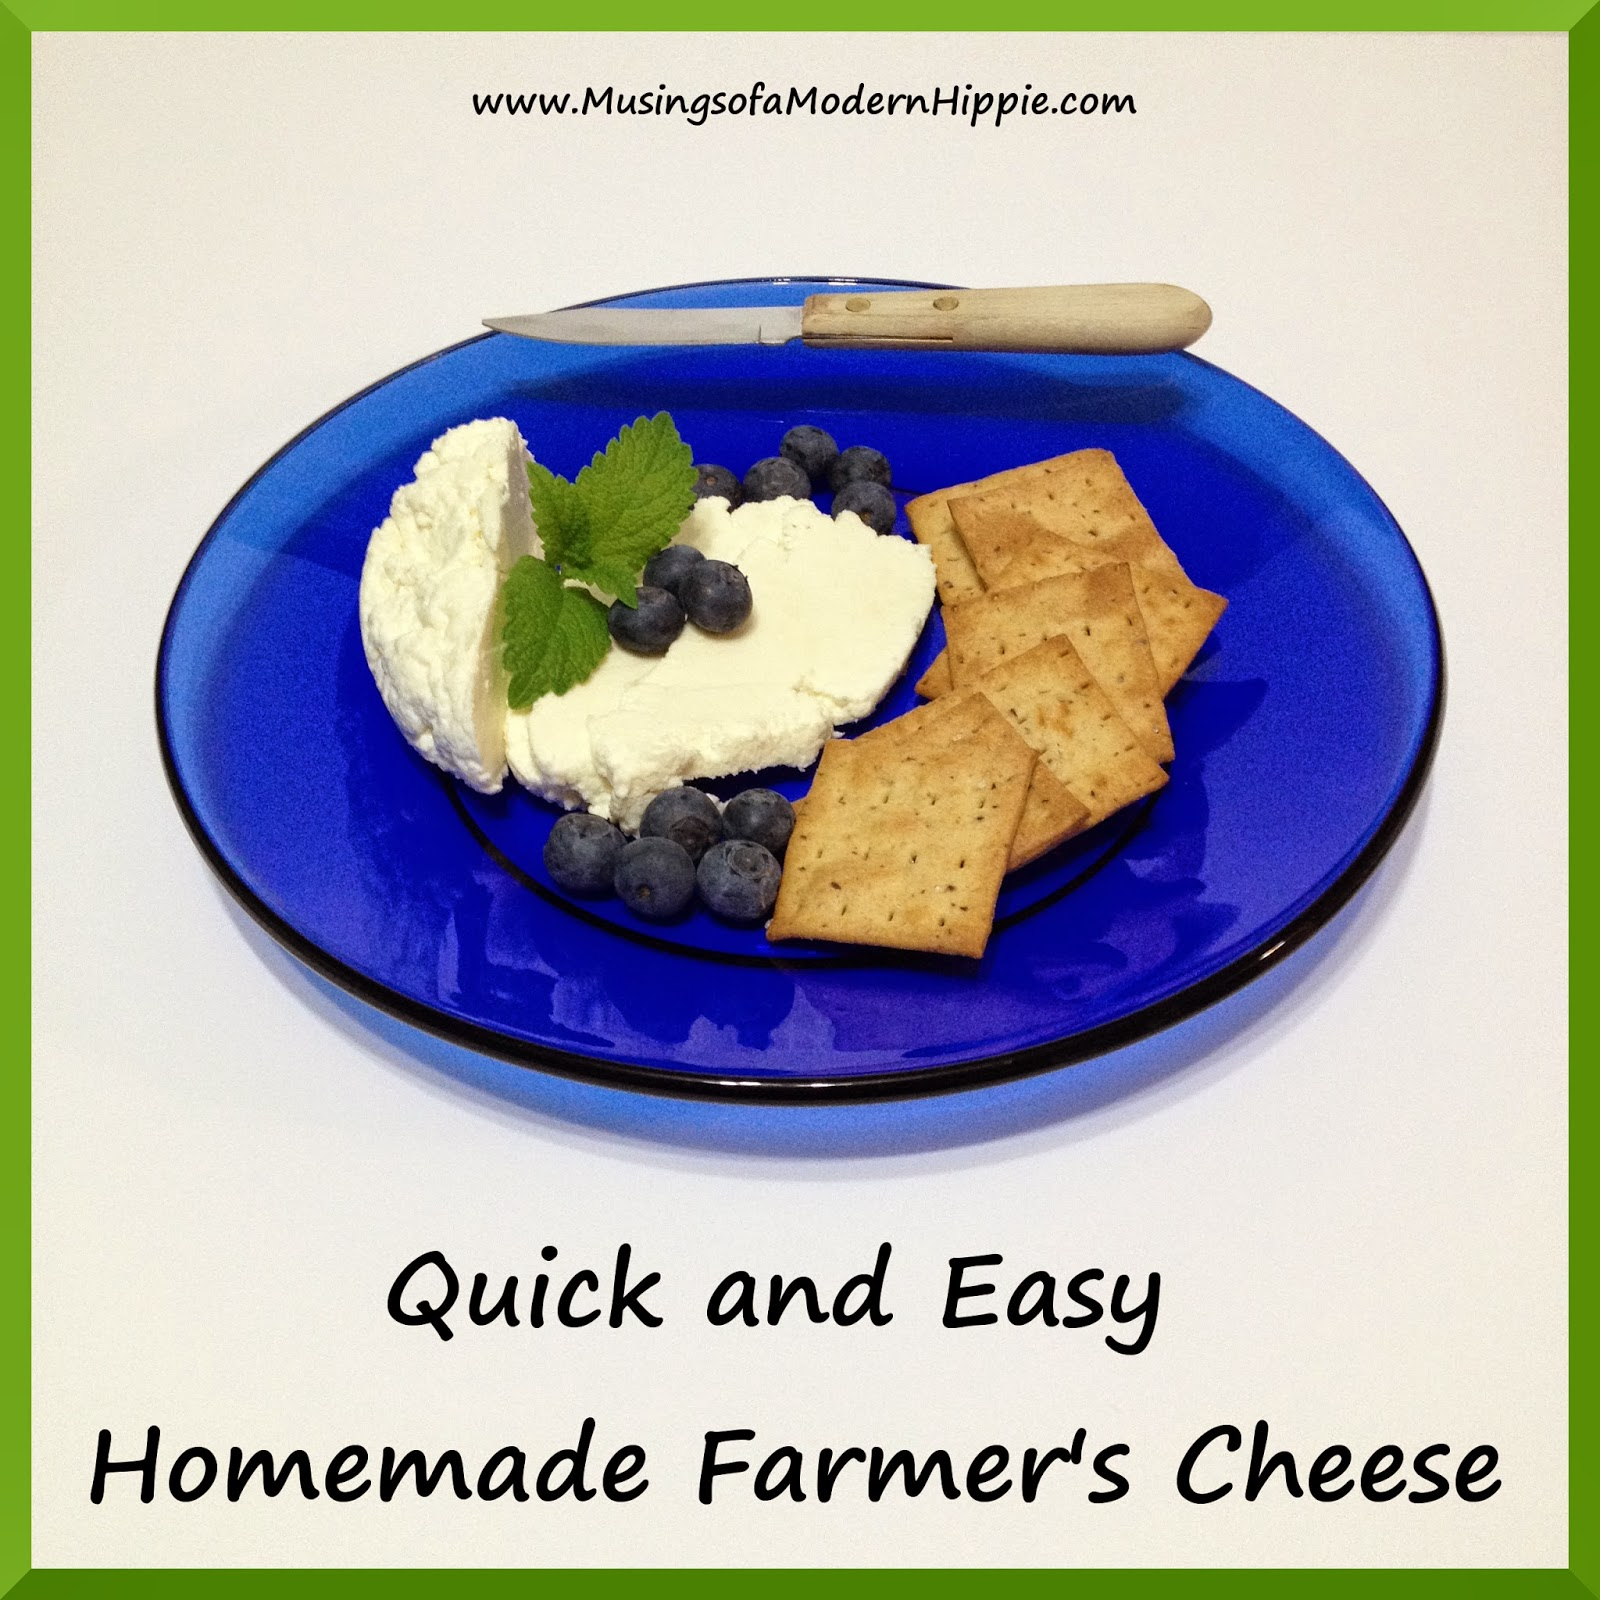 Quick and Easy Homemade Cheese | Musings of a Modern Hippie